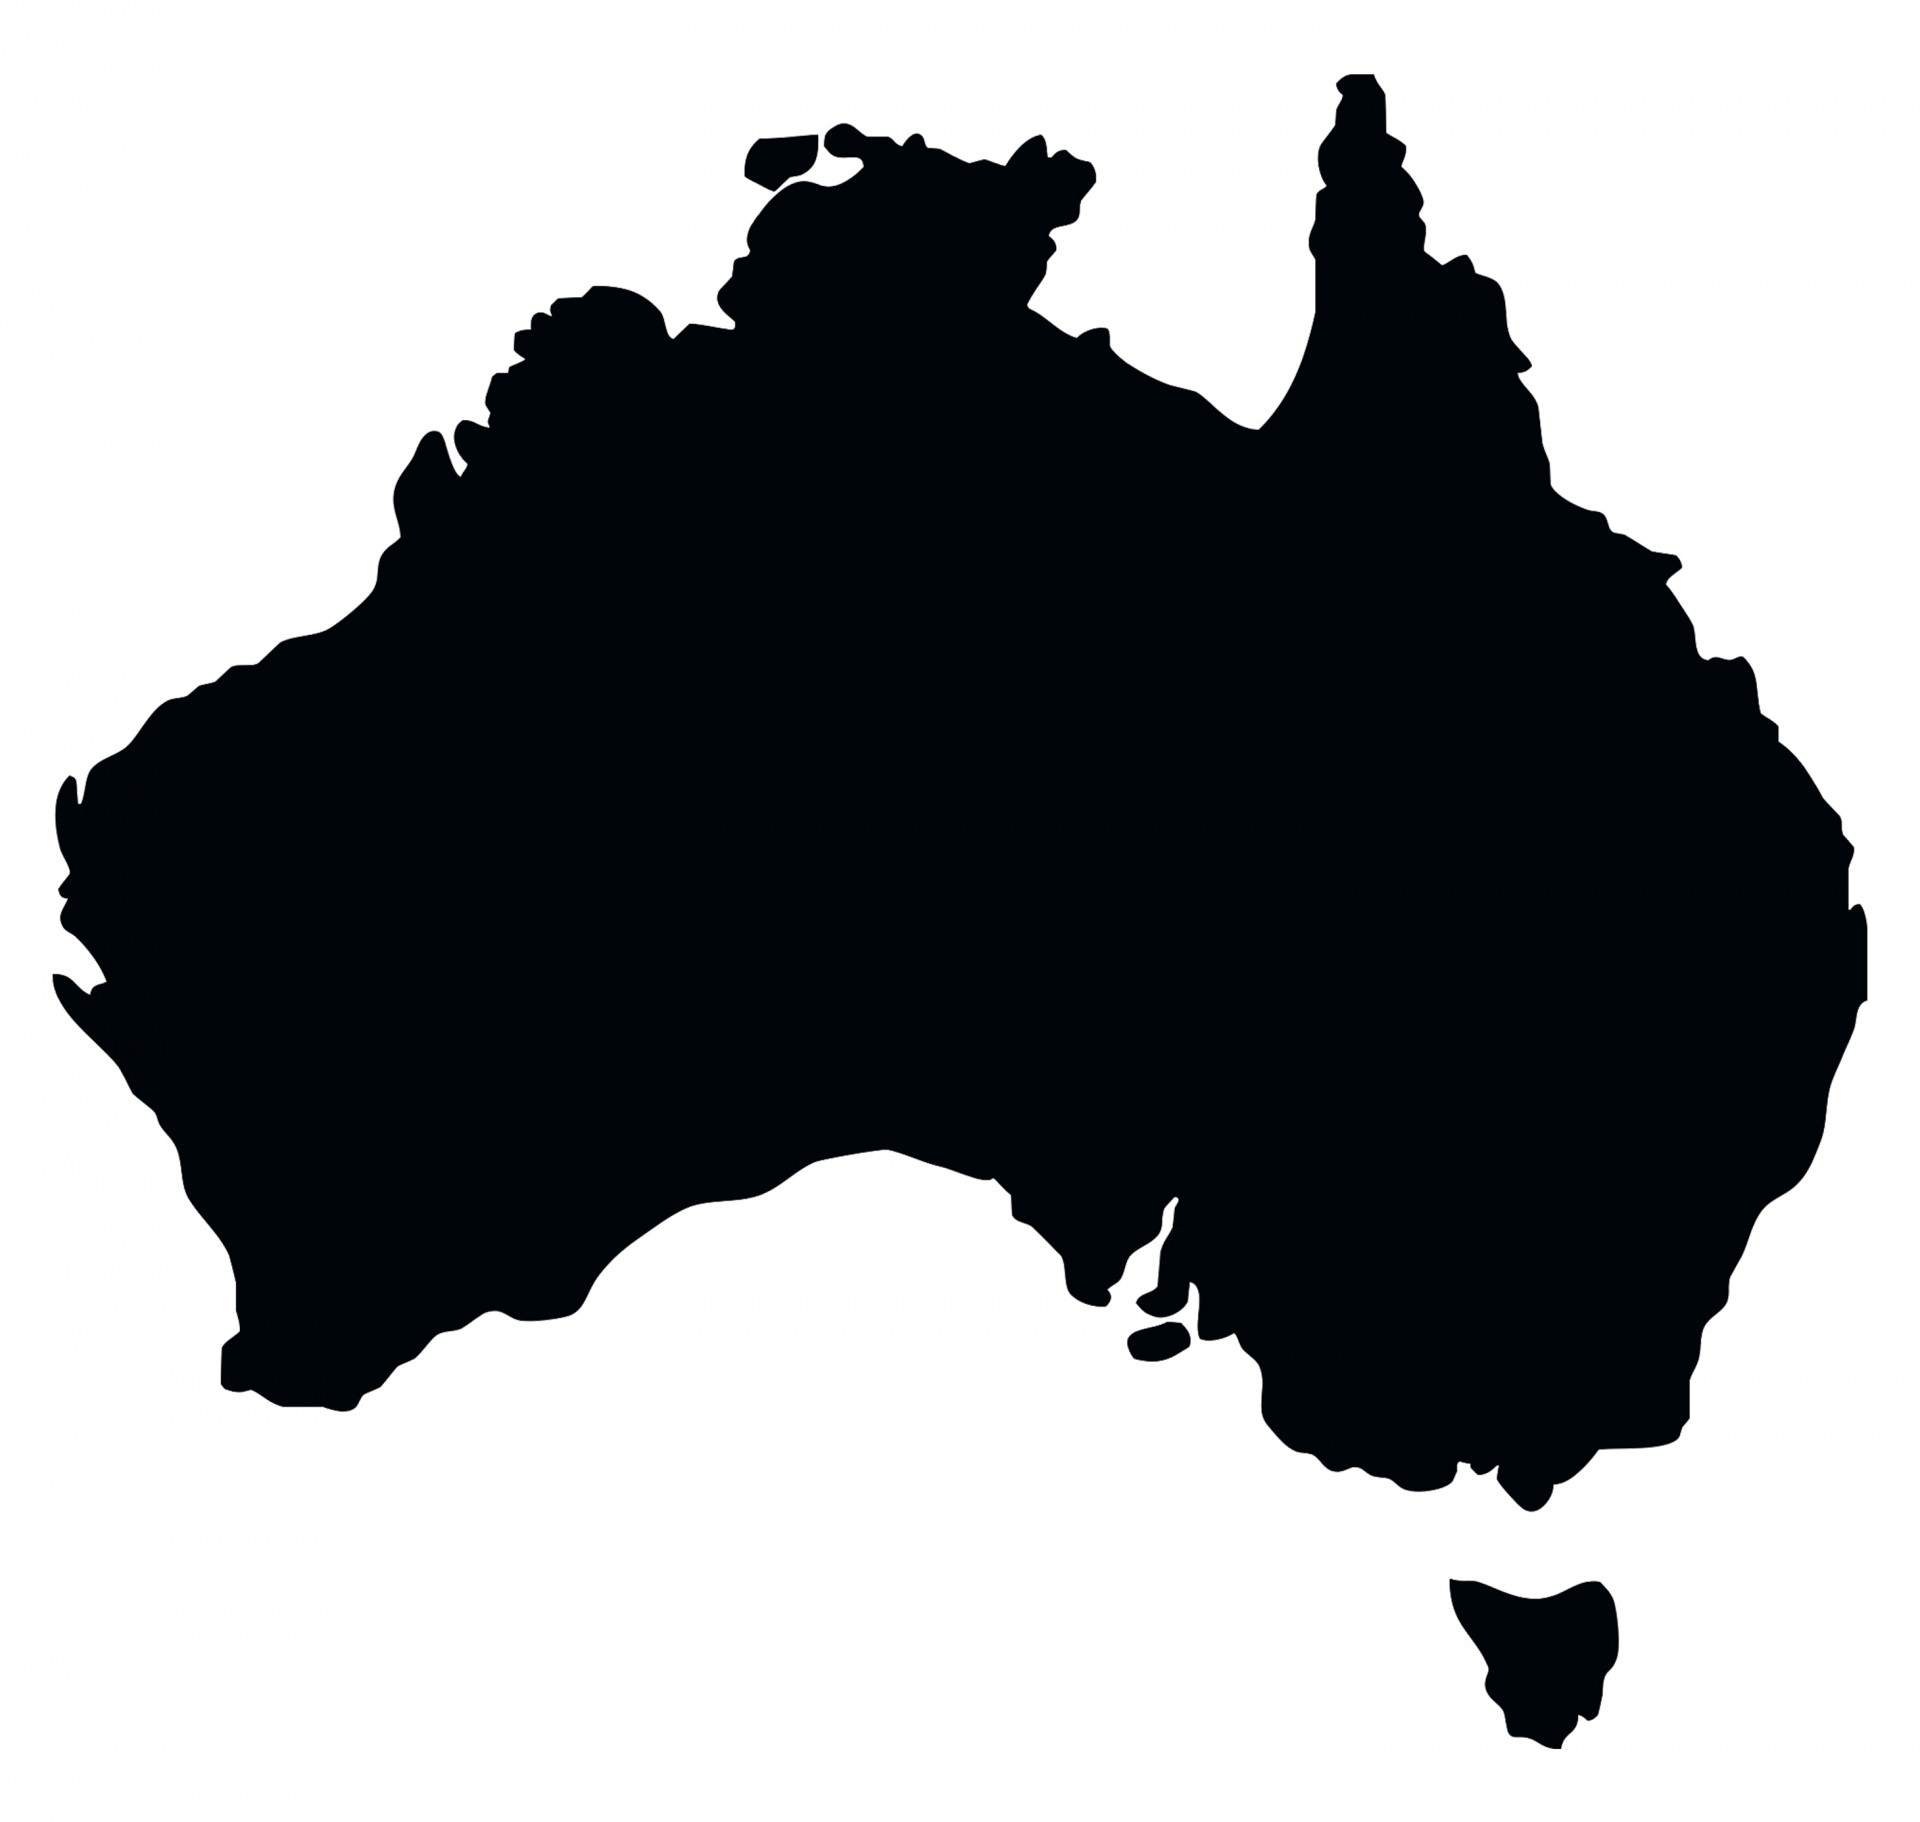 Australia clipart. Map free stock photo